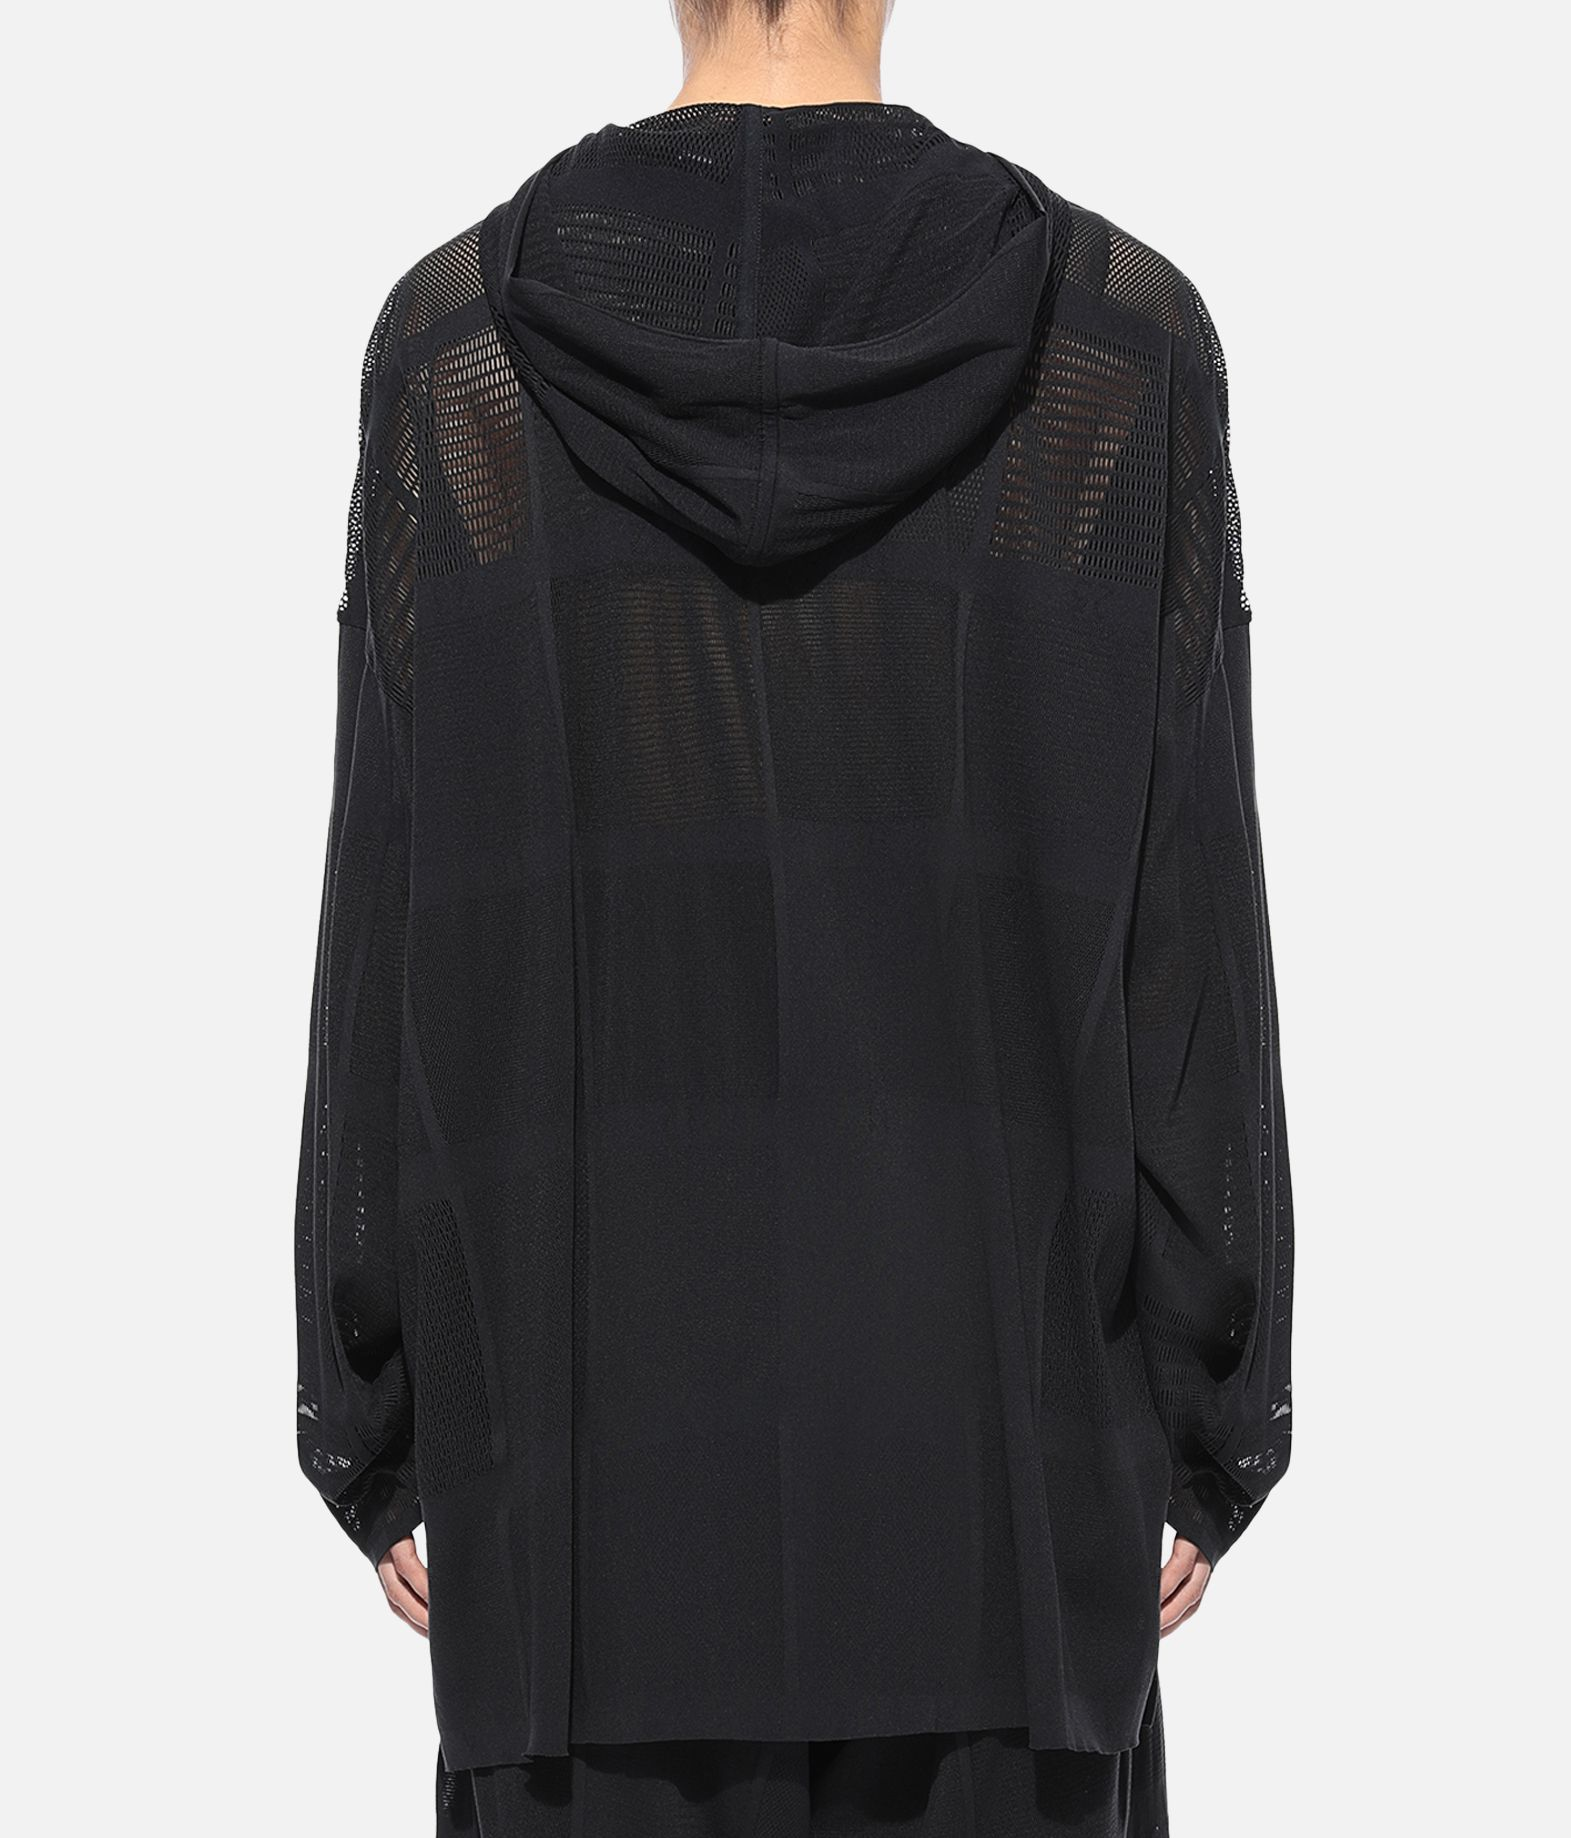 Y-3 Y-3 Patchwork Hoodie Hooded sweatshirt Woman d